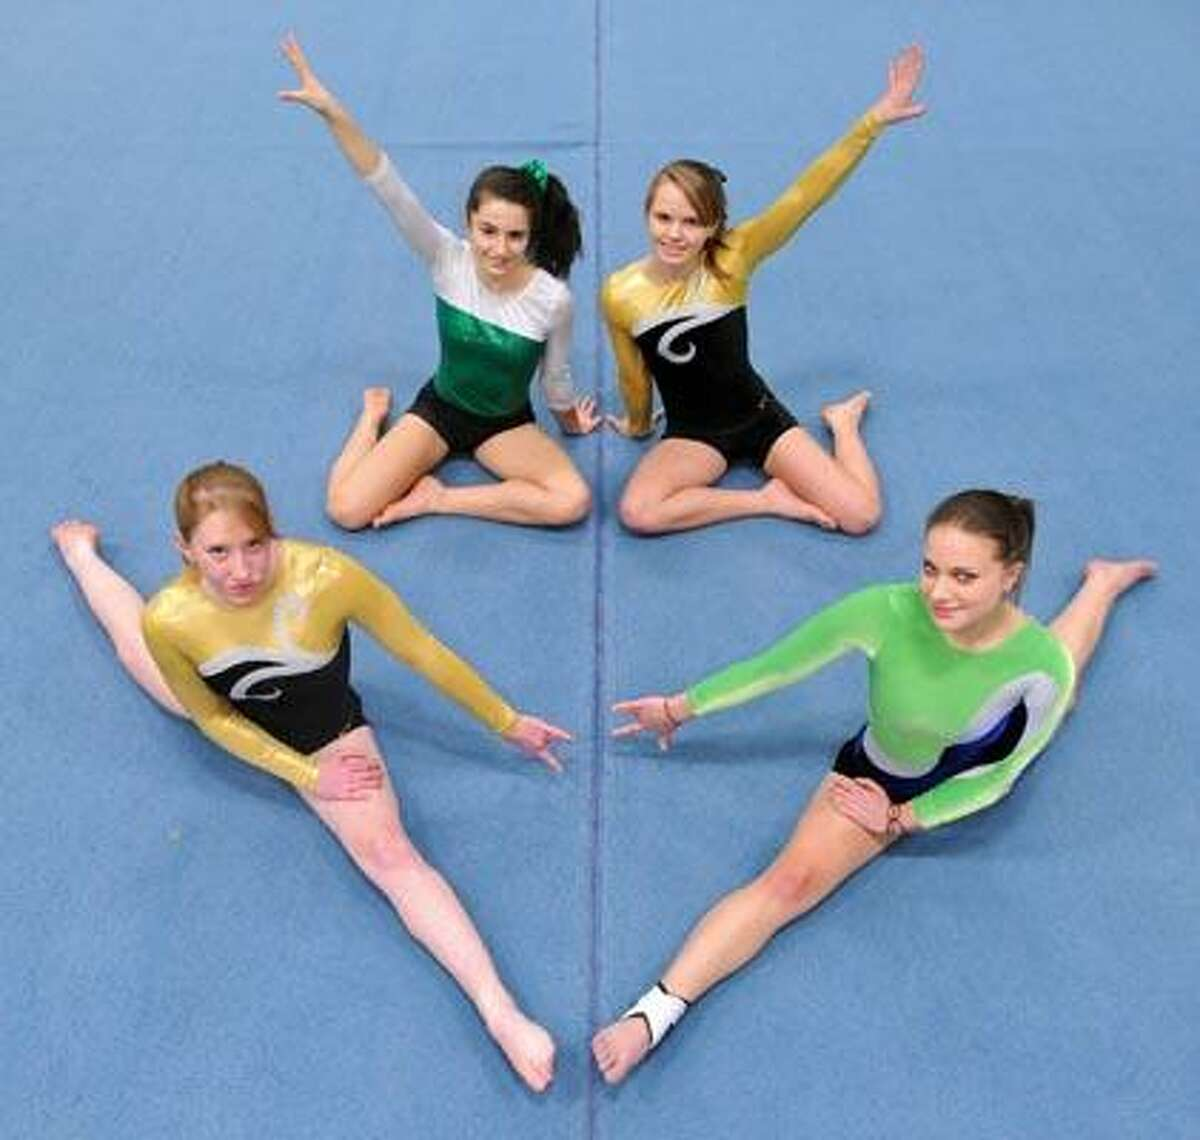 Madison--Hand/Guilford gymnasts clockwise from bottom left: Maia Smith, Alicia Rinaldi, Kim Megargee and Dana Colonese. Photo by Brad Horrigan/New Haven Register-01.06.11.